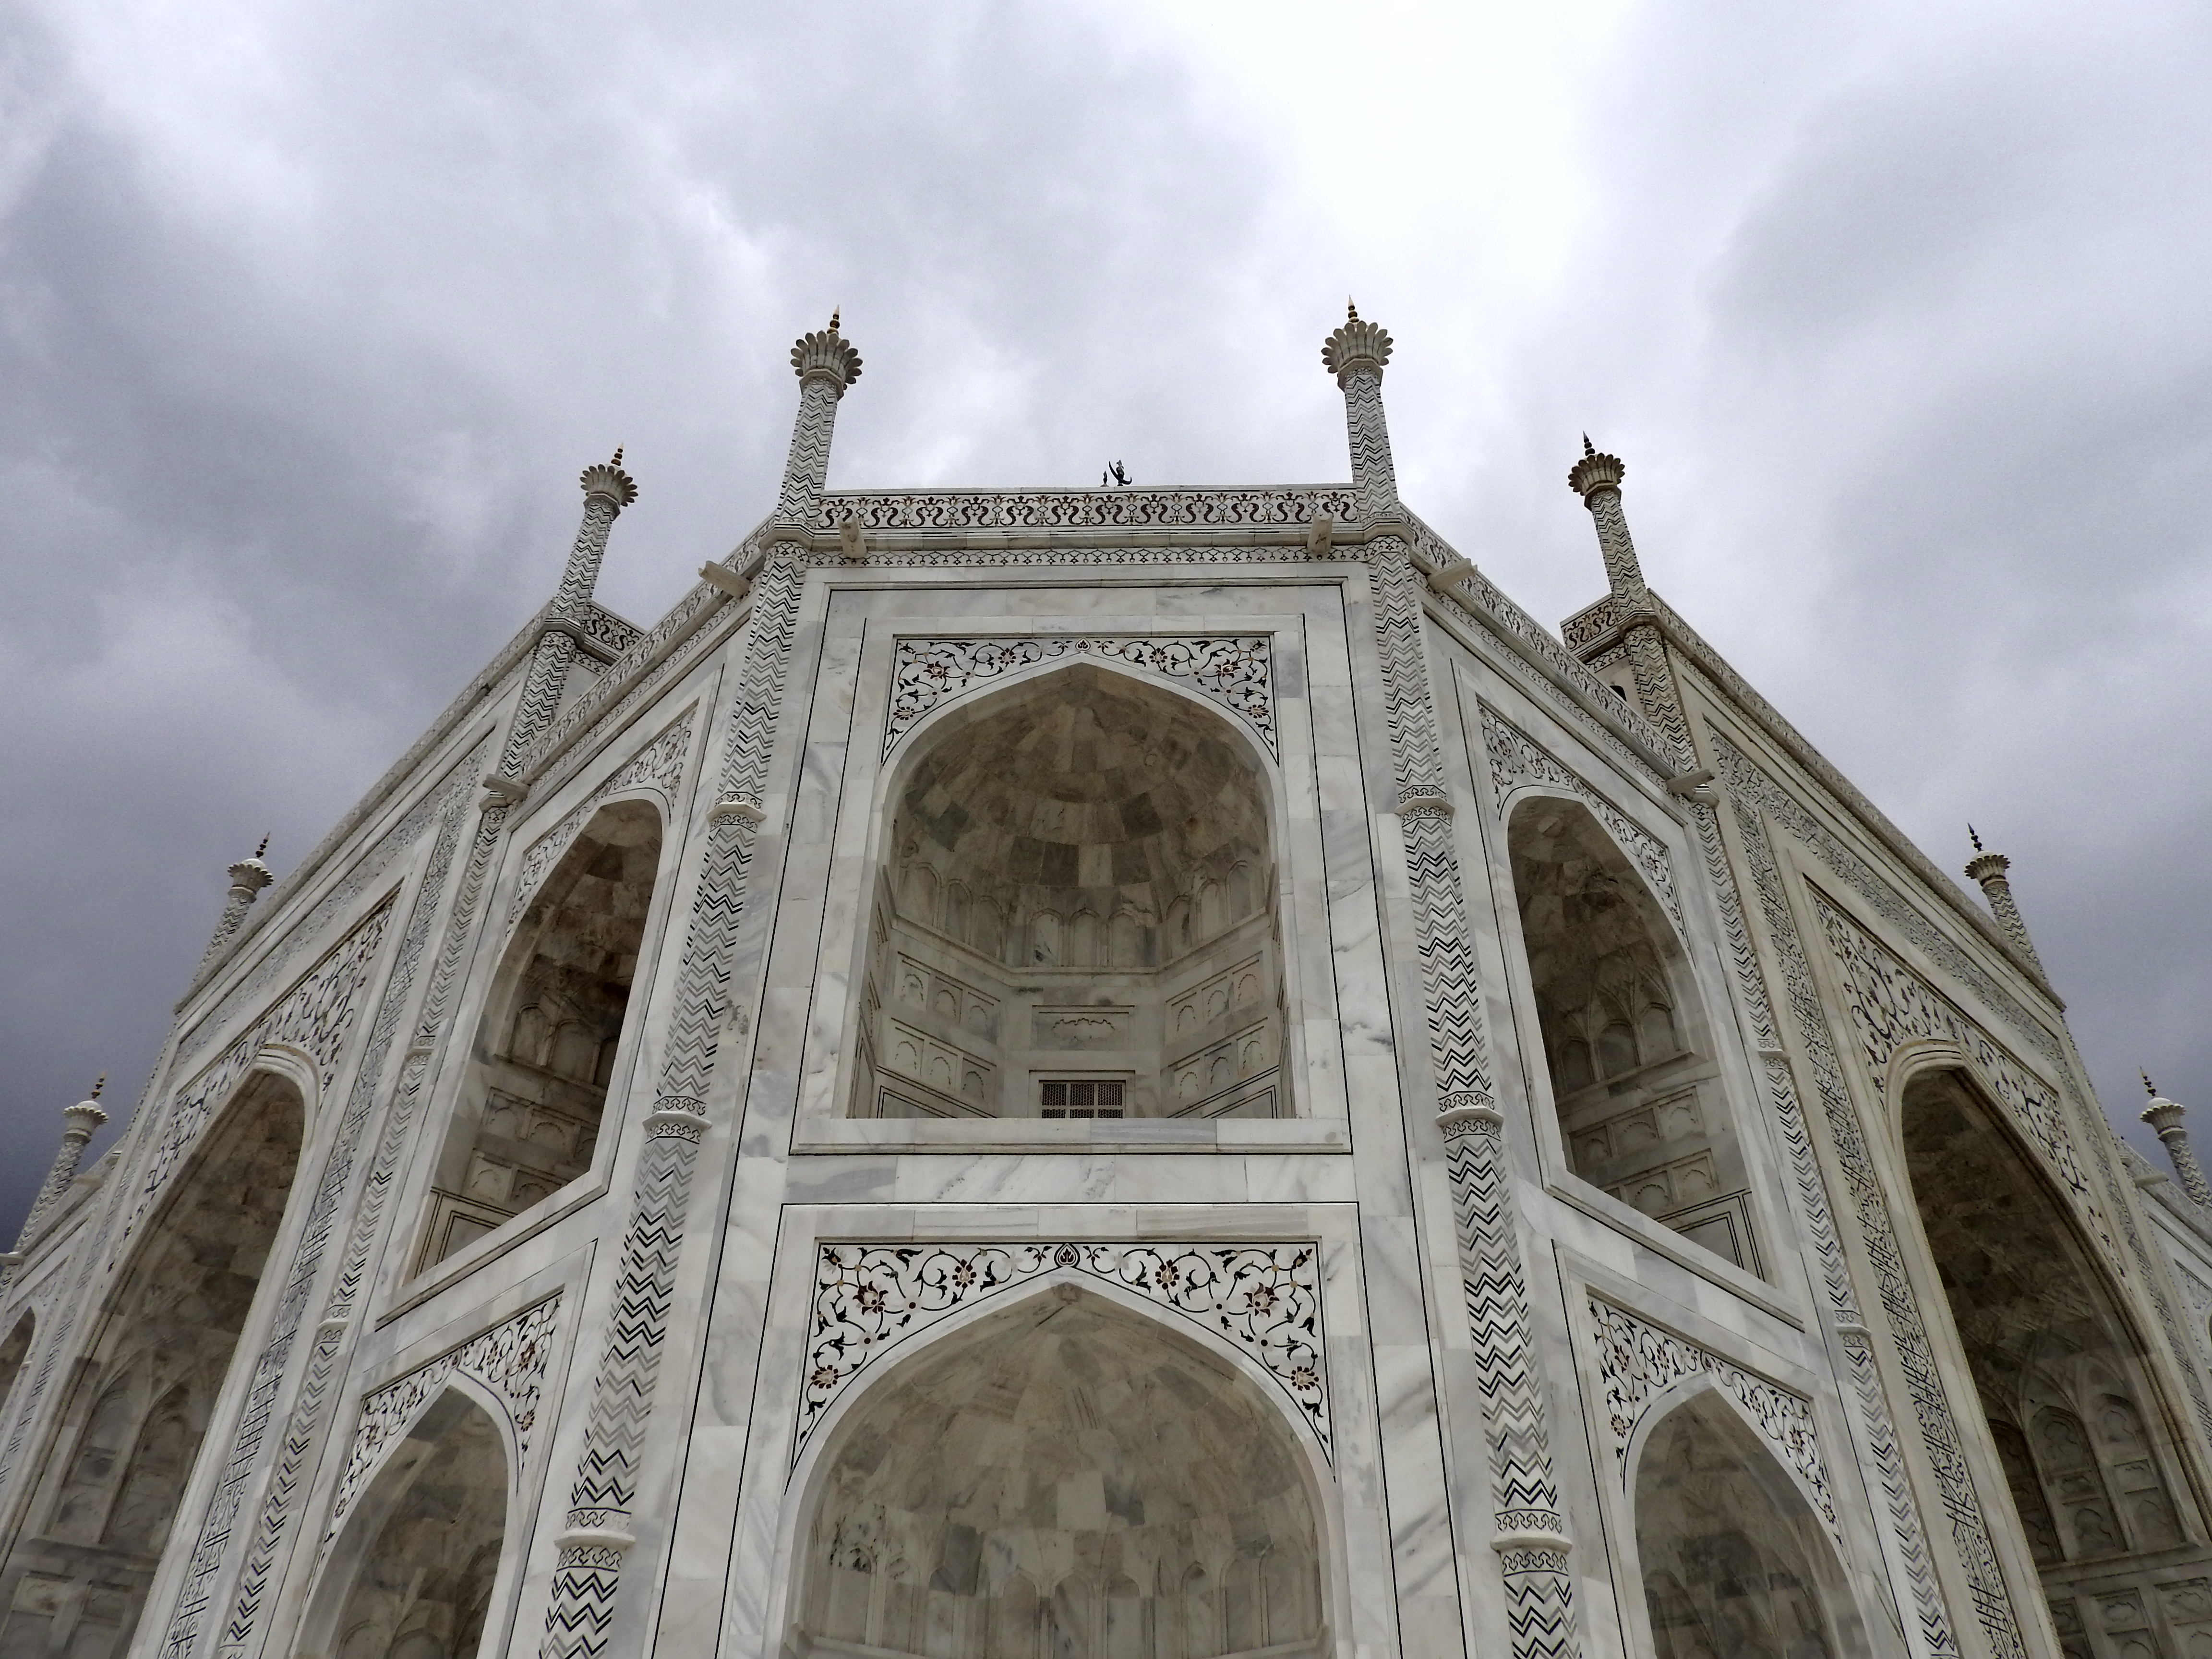 Close up view of the main structure of the Taj Mahal